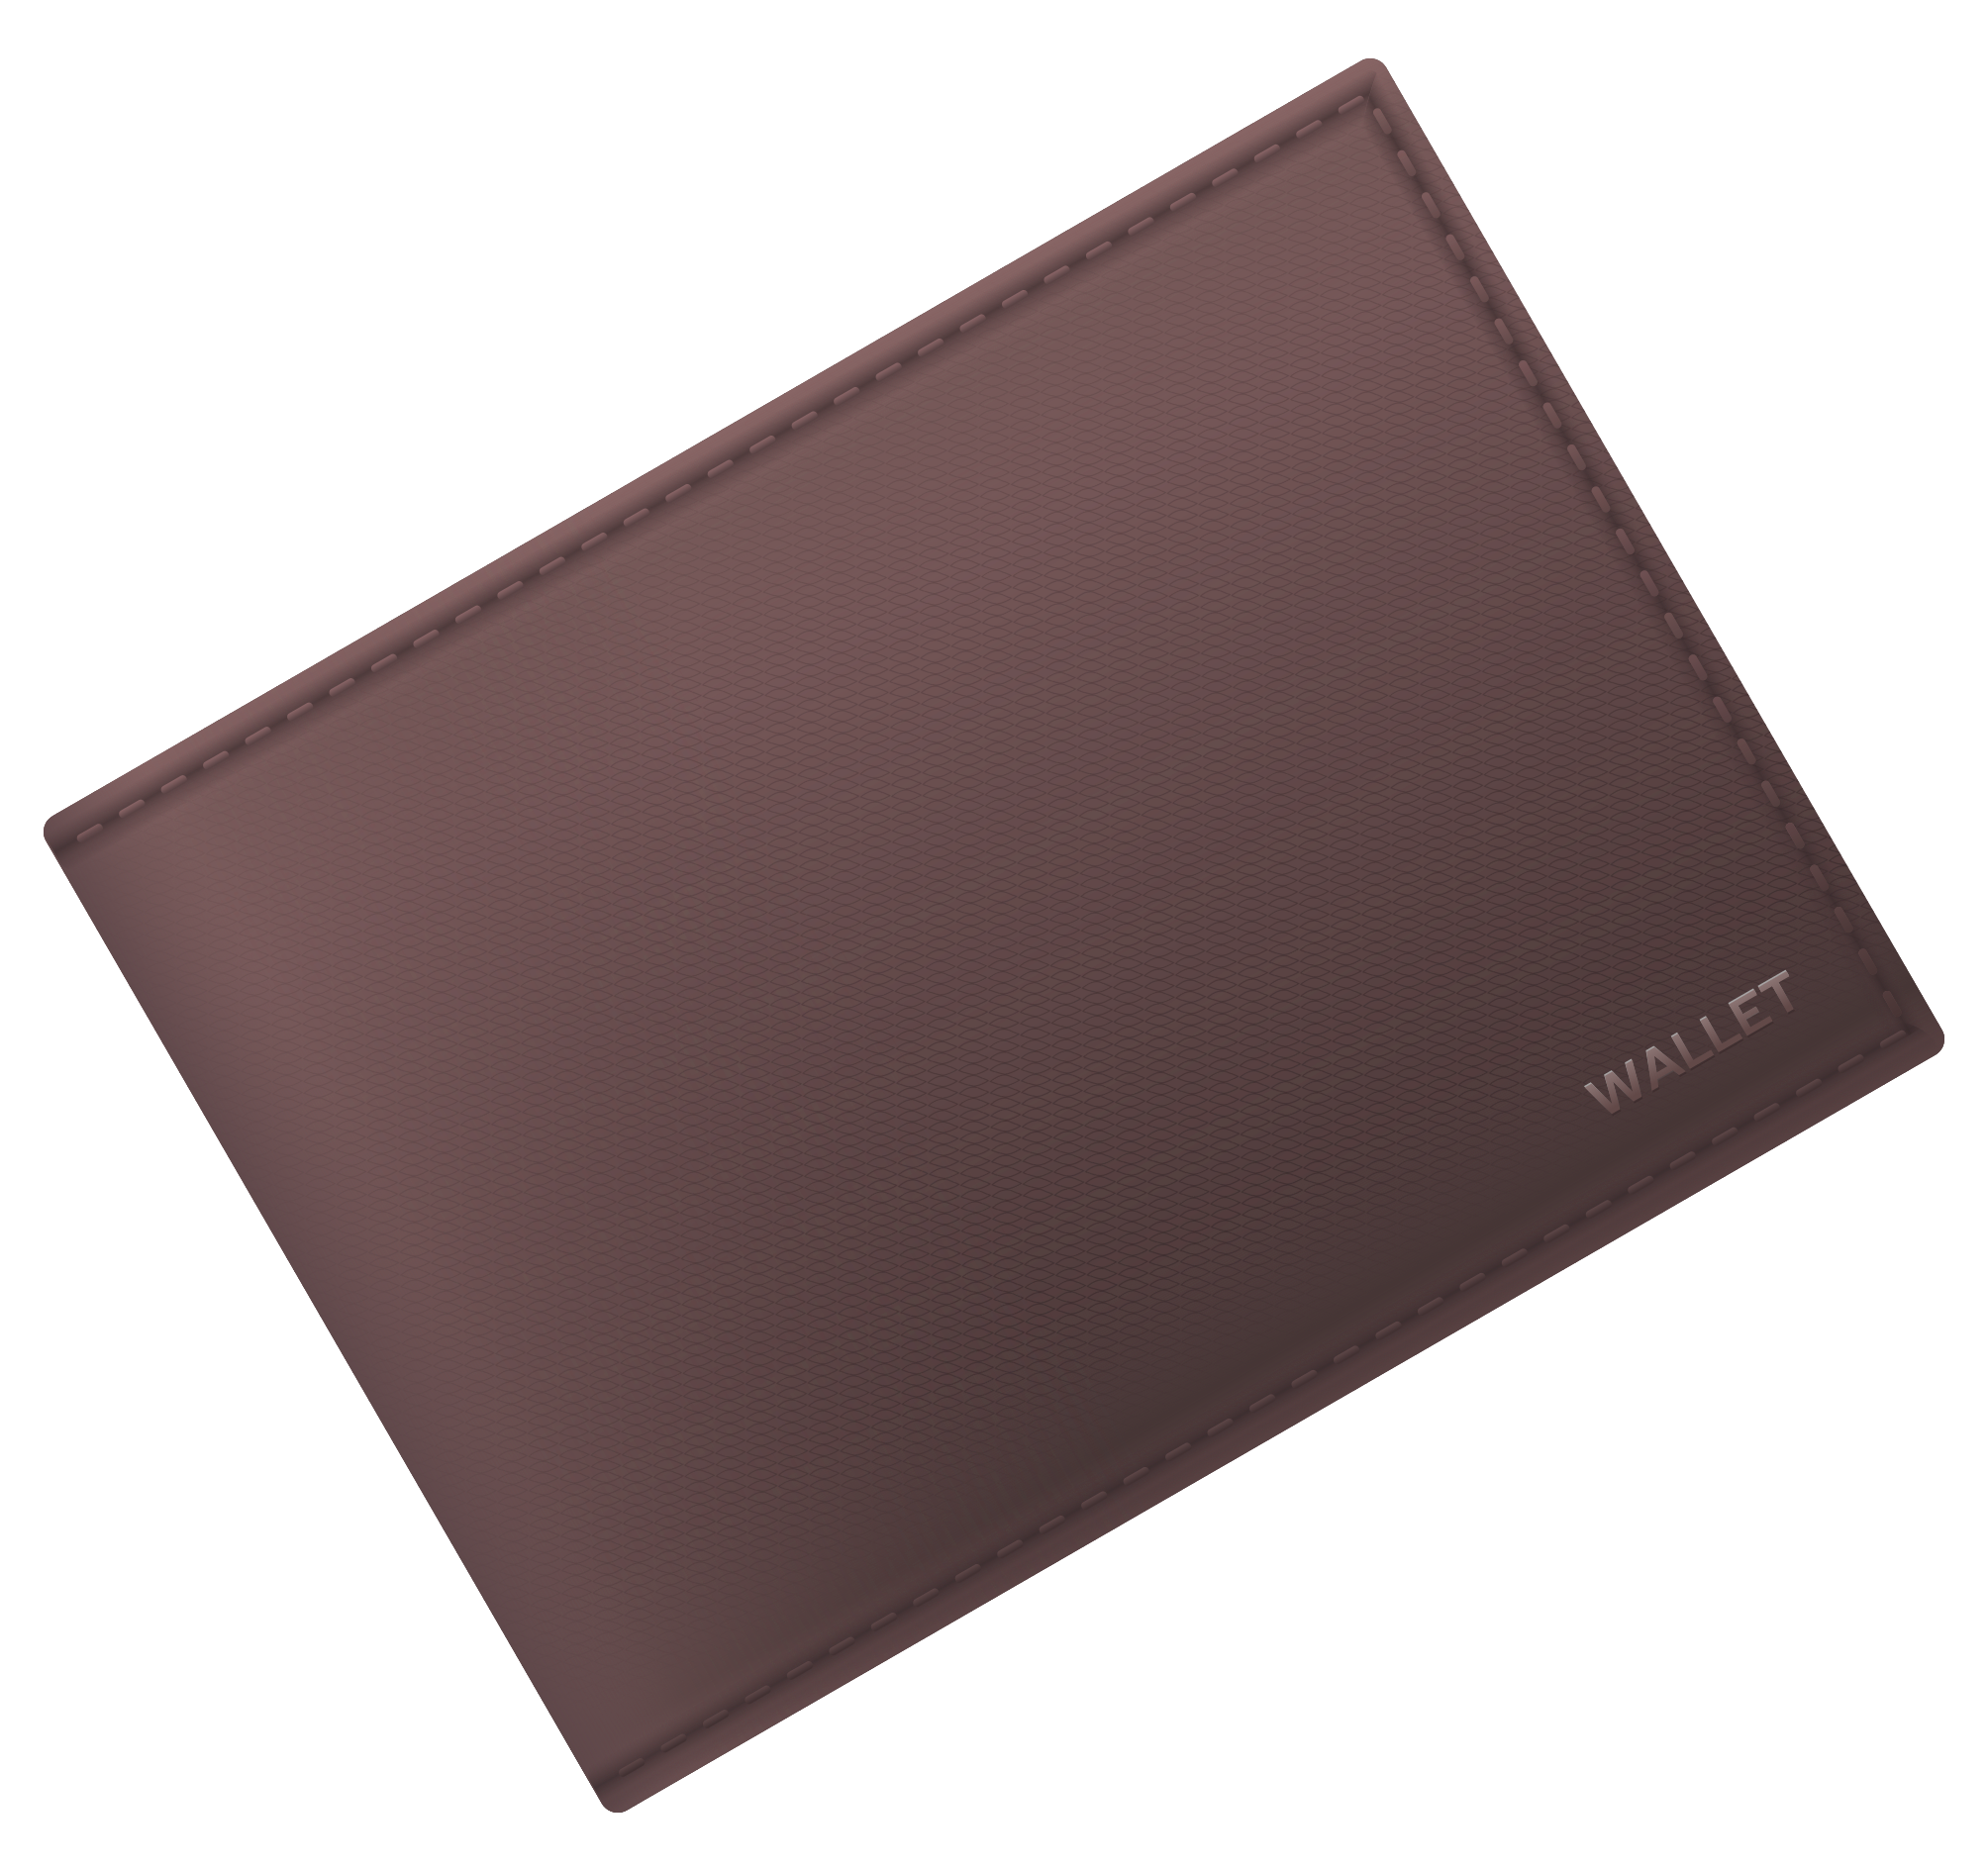 Wallet with money clipart graphic library Leather Wallet PNG Image - PurePNG | Free transparent CC0 PNG Image ... graphic library